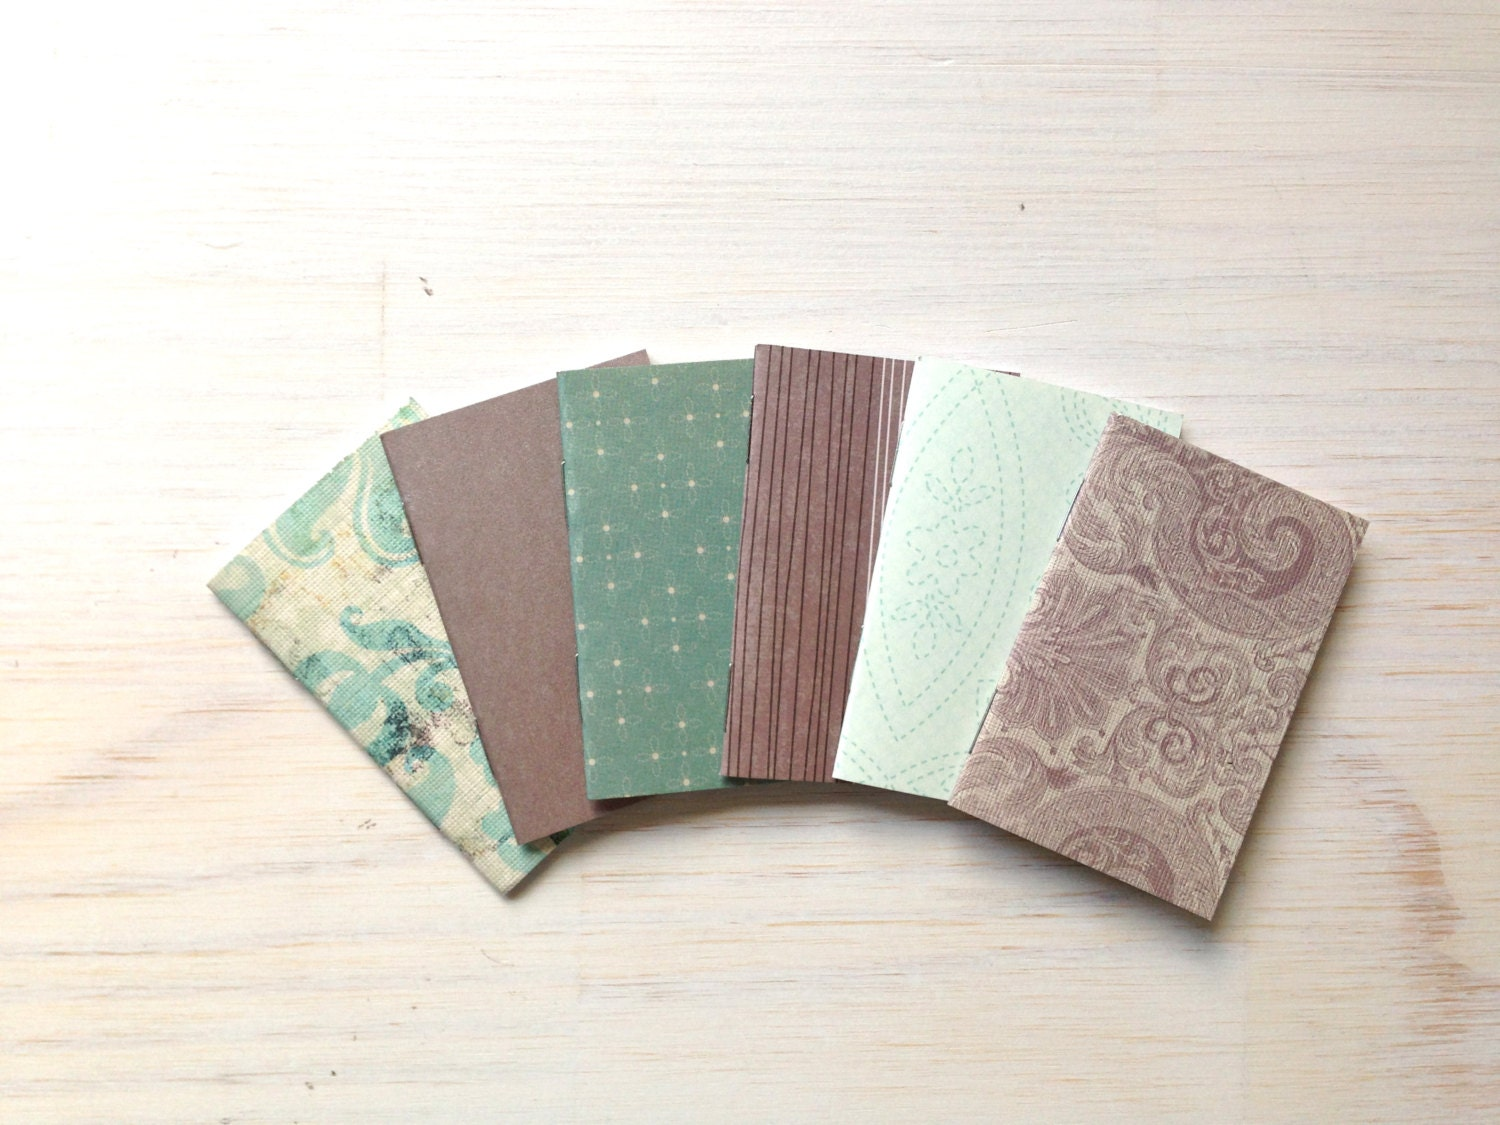 Tiny Journals: Small Notebooks, Mini Wedding Favors, Teal, Grey, Mini Journals, Small, Unique, Cute, Purse Journal - ordinaryartists